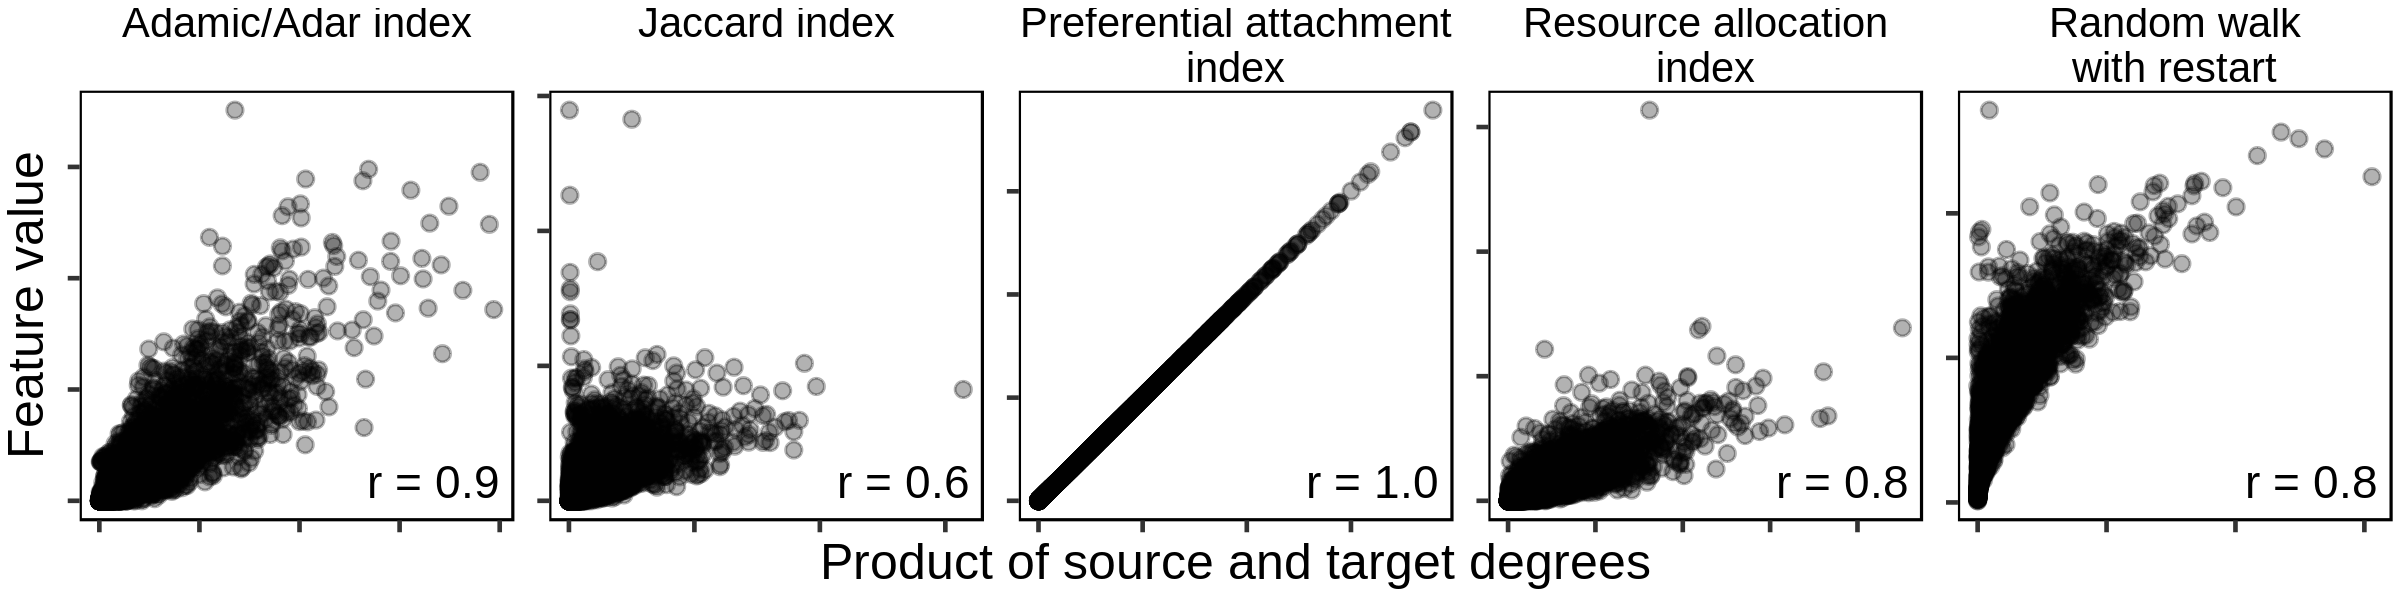 Figure 7: Common edge-prediction metrics correlate with node degree. Five common edge-prediction features (Supplemental table 2) are correlated with node degree on the STRING PPI network [18]. All five features show a positive relationship with degree, though the magnitude of this correlation is highly variable. The preferential attachment index is understandably perfectly correlated because it is equal to the product of source and target degree.